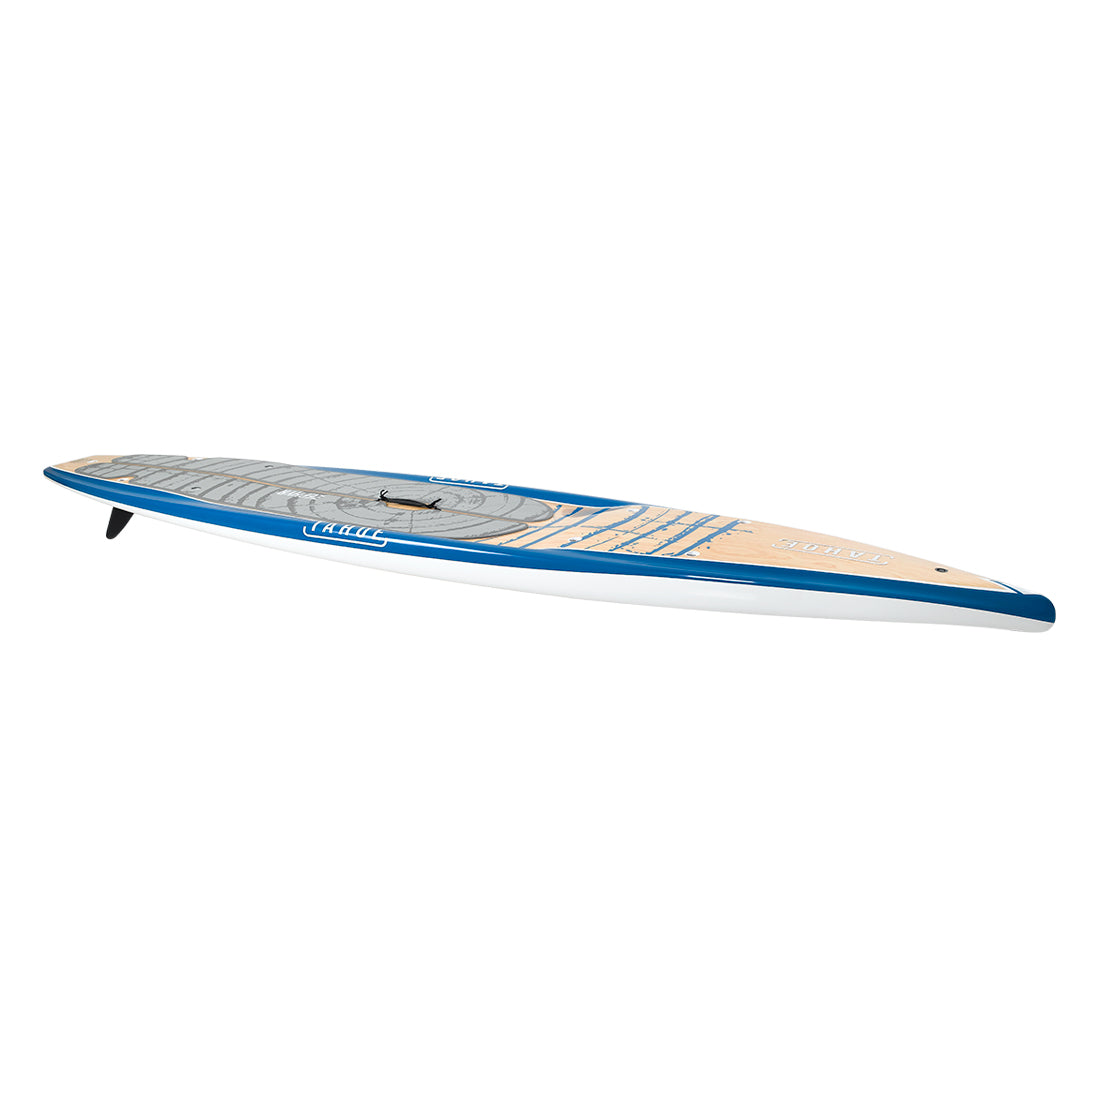 Tahoe SUP Zephyr Touring Standup Paddle Board - Board Only Paddle Boards 4theoutdoors America US USA SUP outdoors